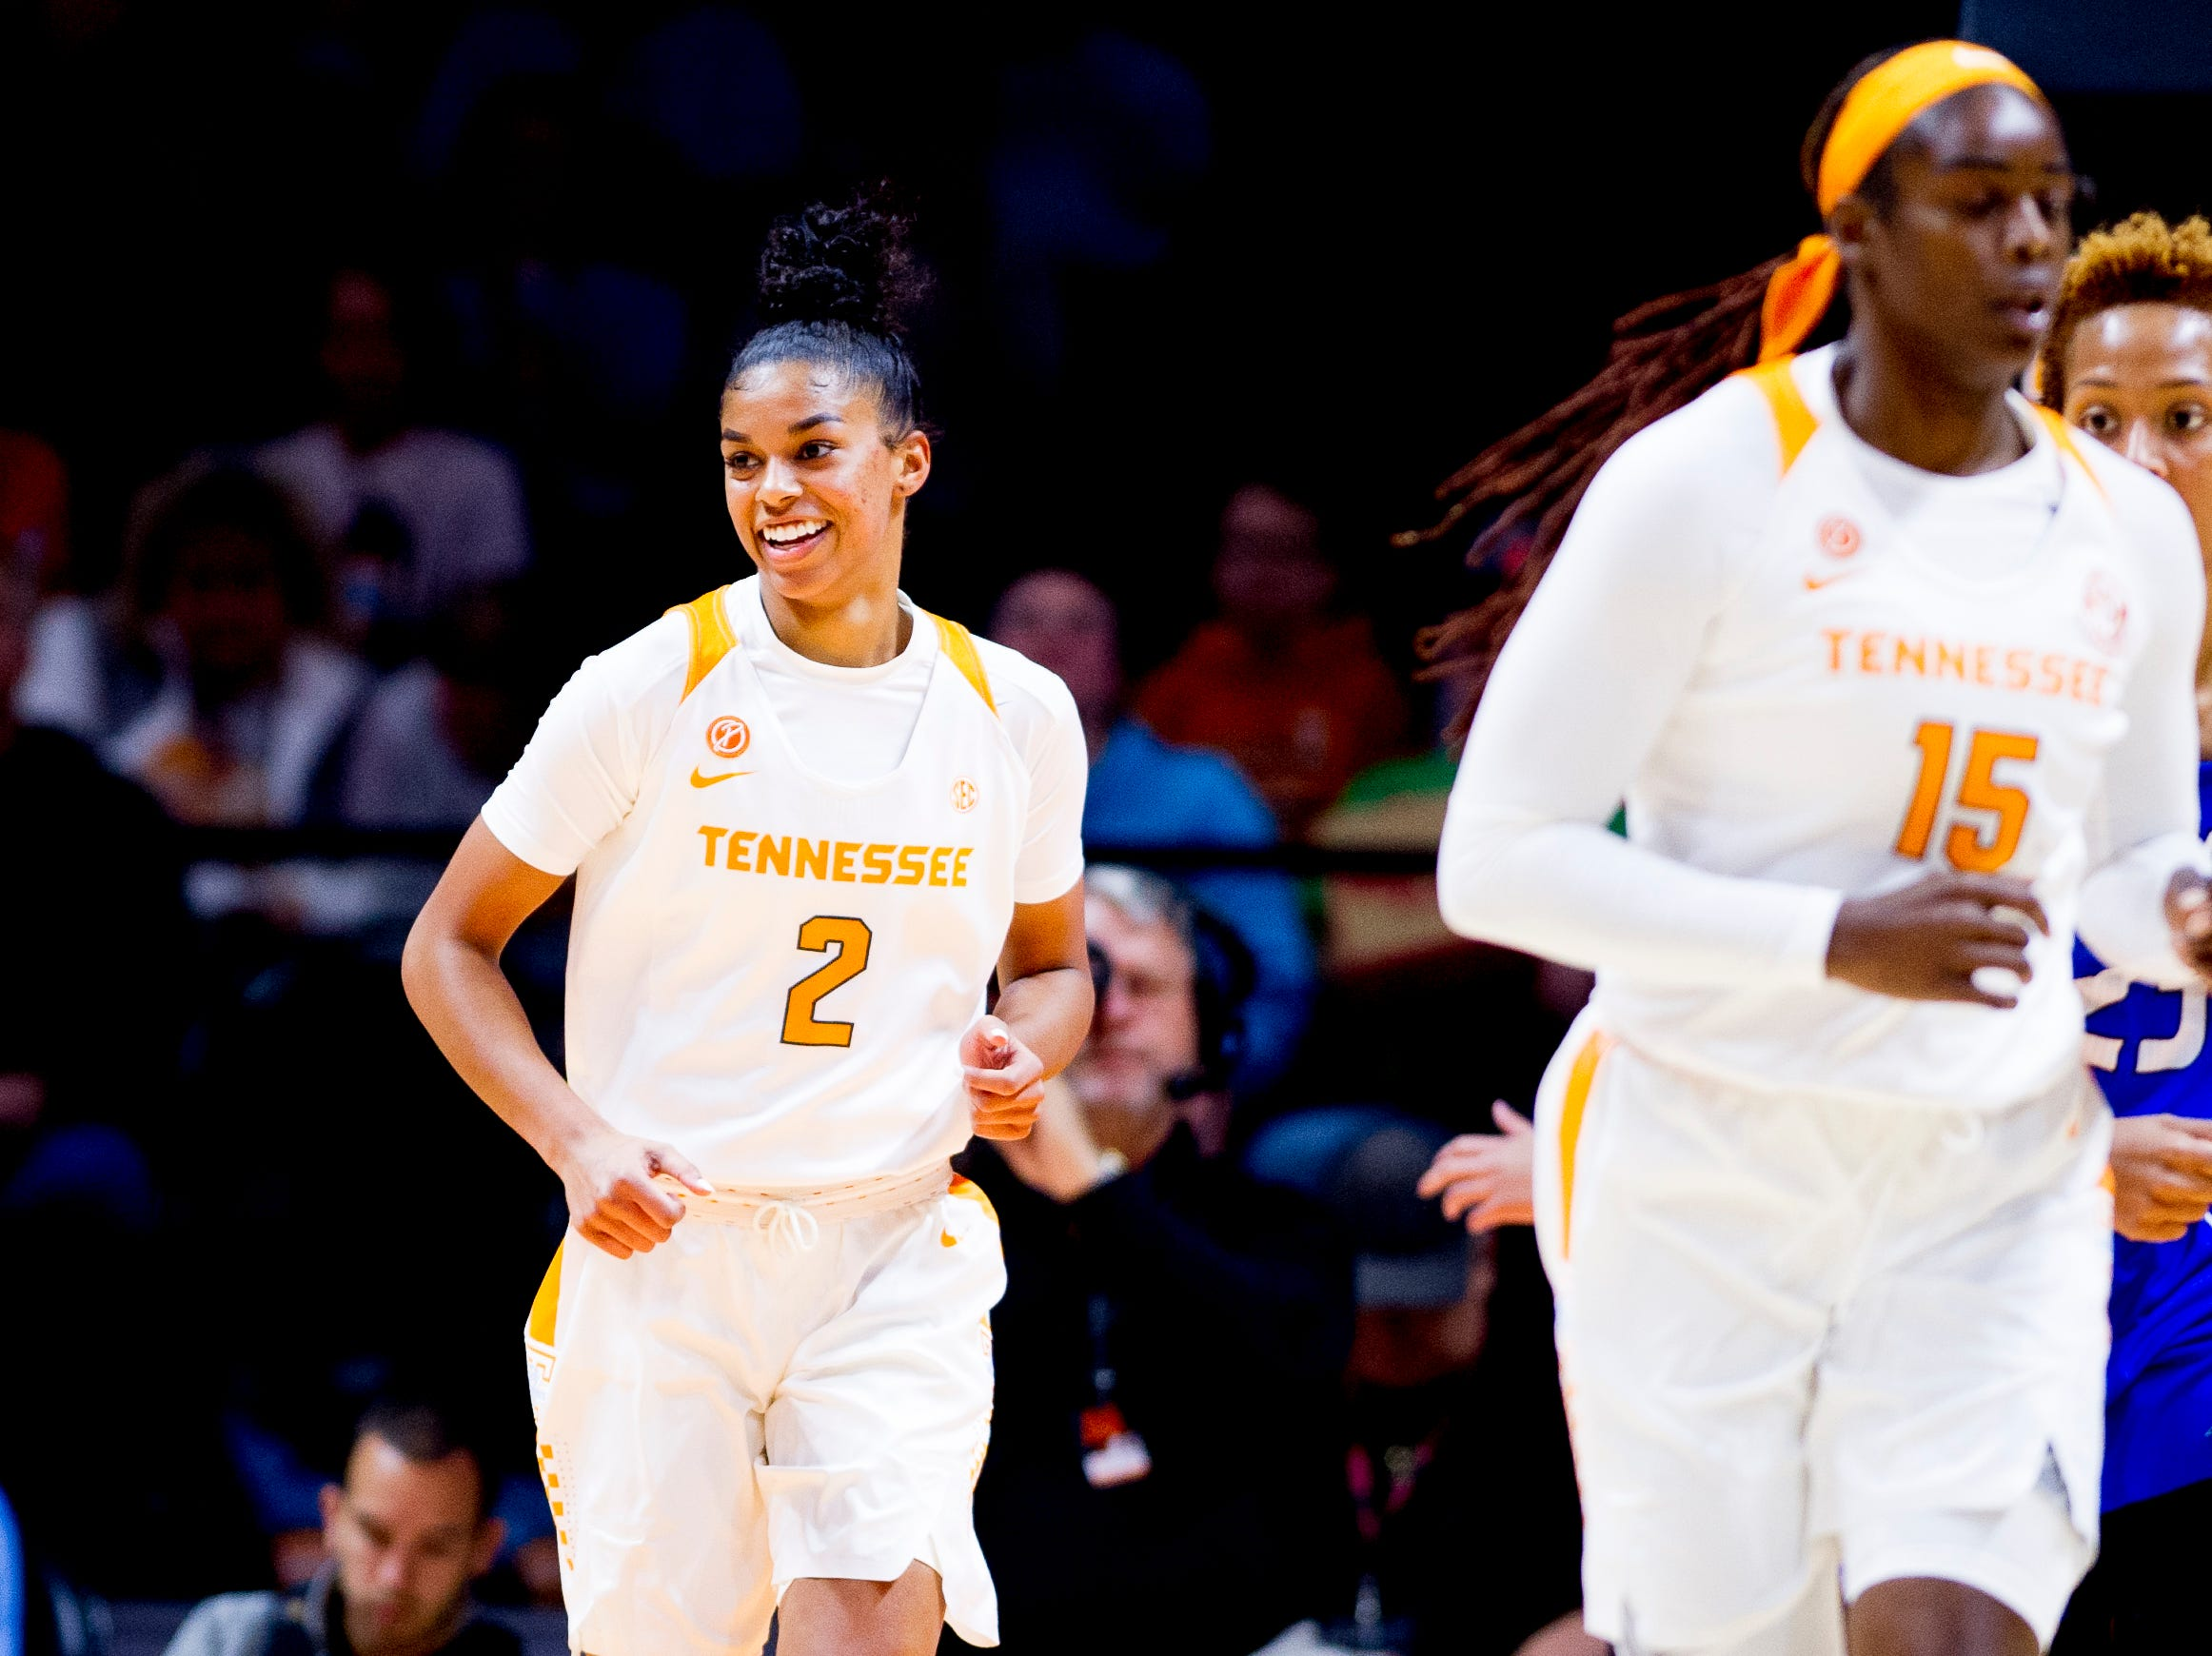 Tennessee guard Evina Westbrook (2) celebrates a point during a game between Tennessee and UNC Asheville at Thompson-Boling Arena in Knoxville, Tennessee on Wednesday, November 14, 2018.